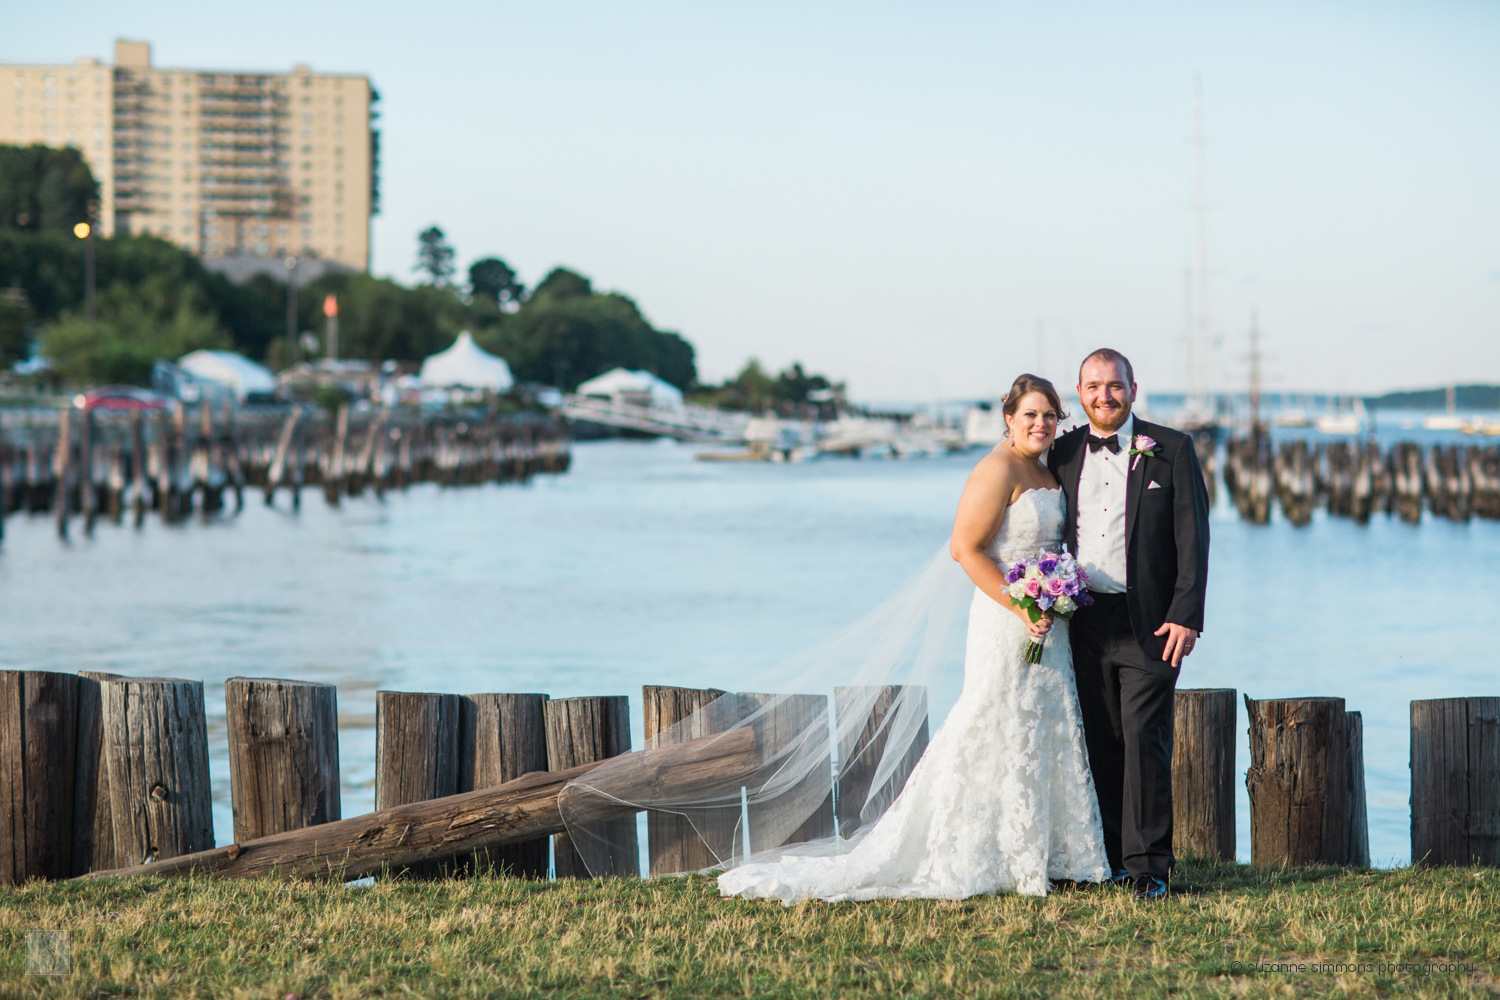 Wedding Portraits at the Ocean Gateway in Portland, Maine